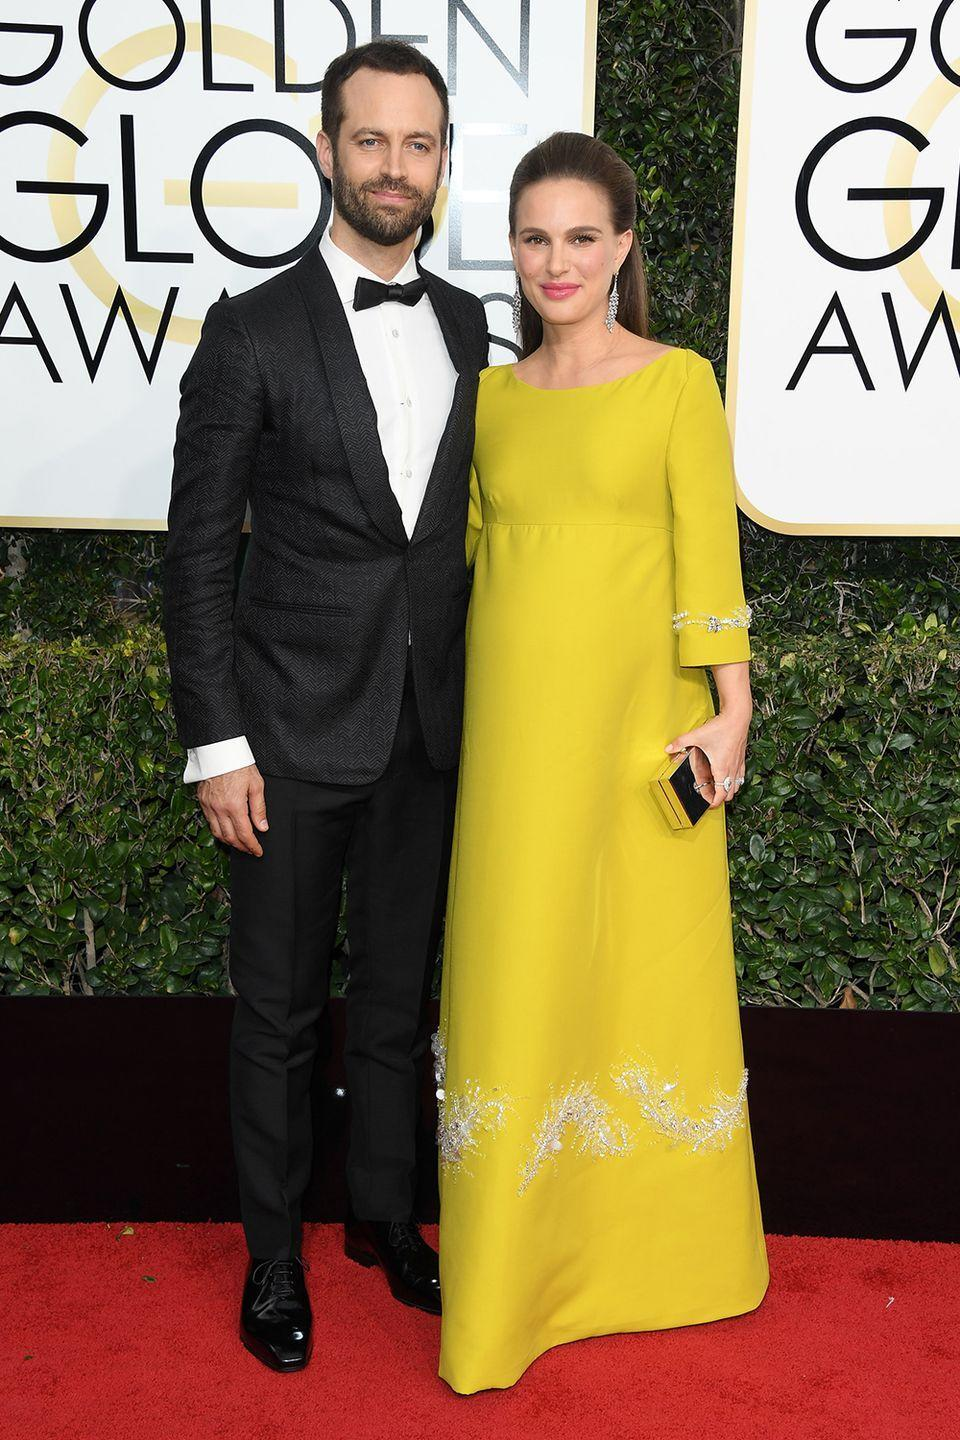 """<p><strong>How long they've been together:</strong> They met on the set of <em>Black Swan</em> in 2010—Millepied was the choreographer. During her acceptance speech for Best Actress at the 83rd Academy Awards in 2011, a then-pregnant Portman thanked Millepied with the sweetest mention. """"My beautiful love, Benjamin Millepied, who choreographed the film and has now given me my most important role in my life,"""" she said.</p><p><strong>Why you forgot they're together:</strong> Even though Portman is a red-carpet regular, she's fairly quiet about her personal life with her dancer husband.<br></p>"""